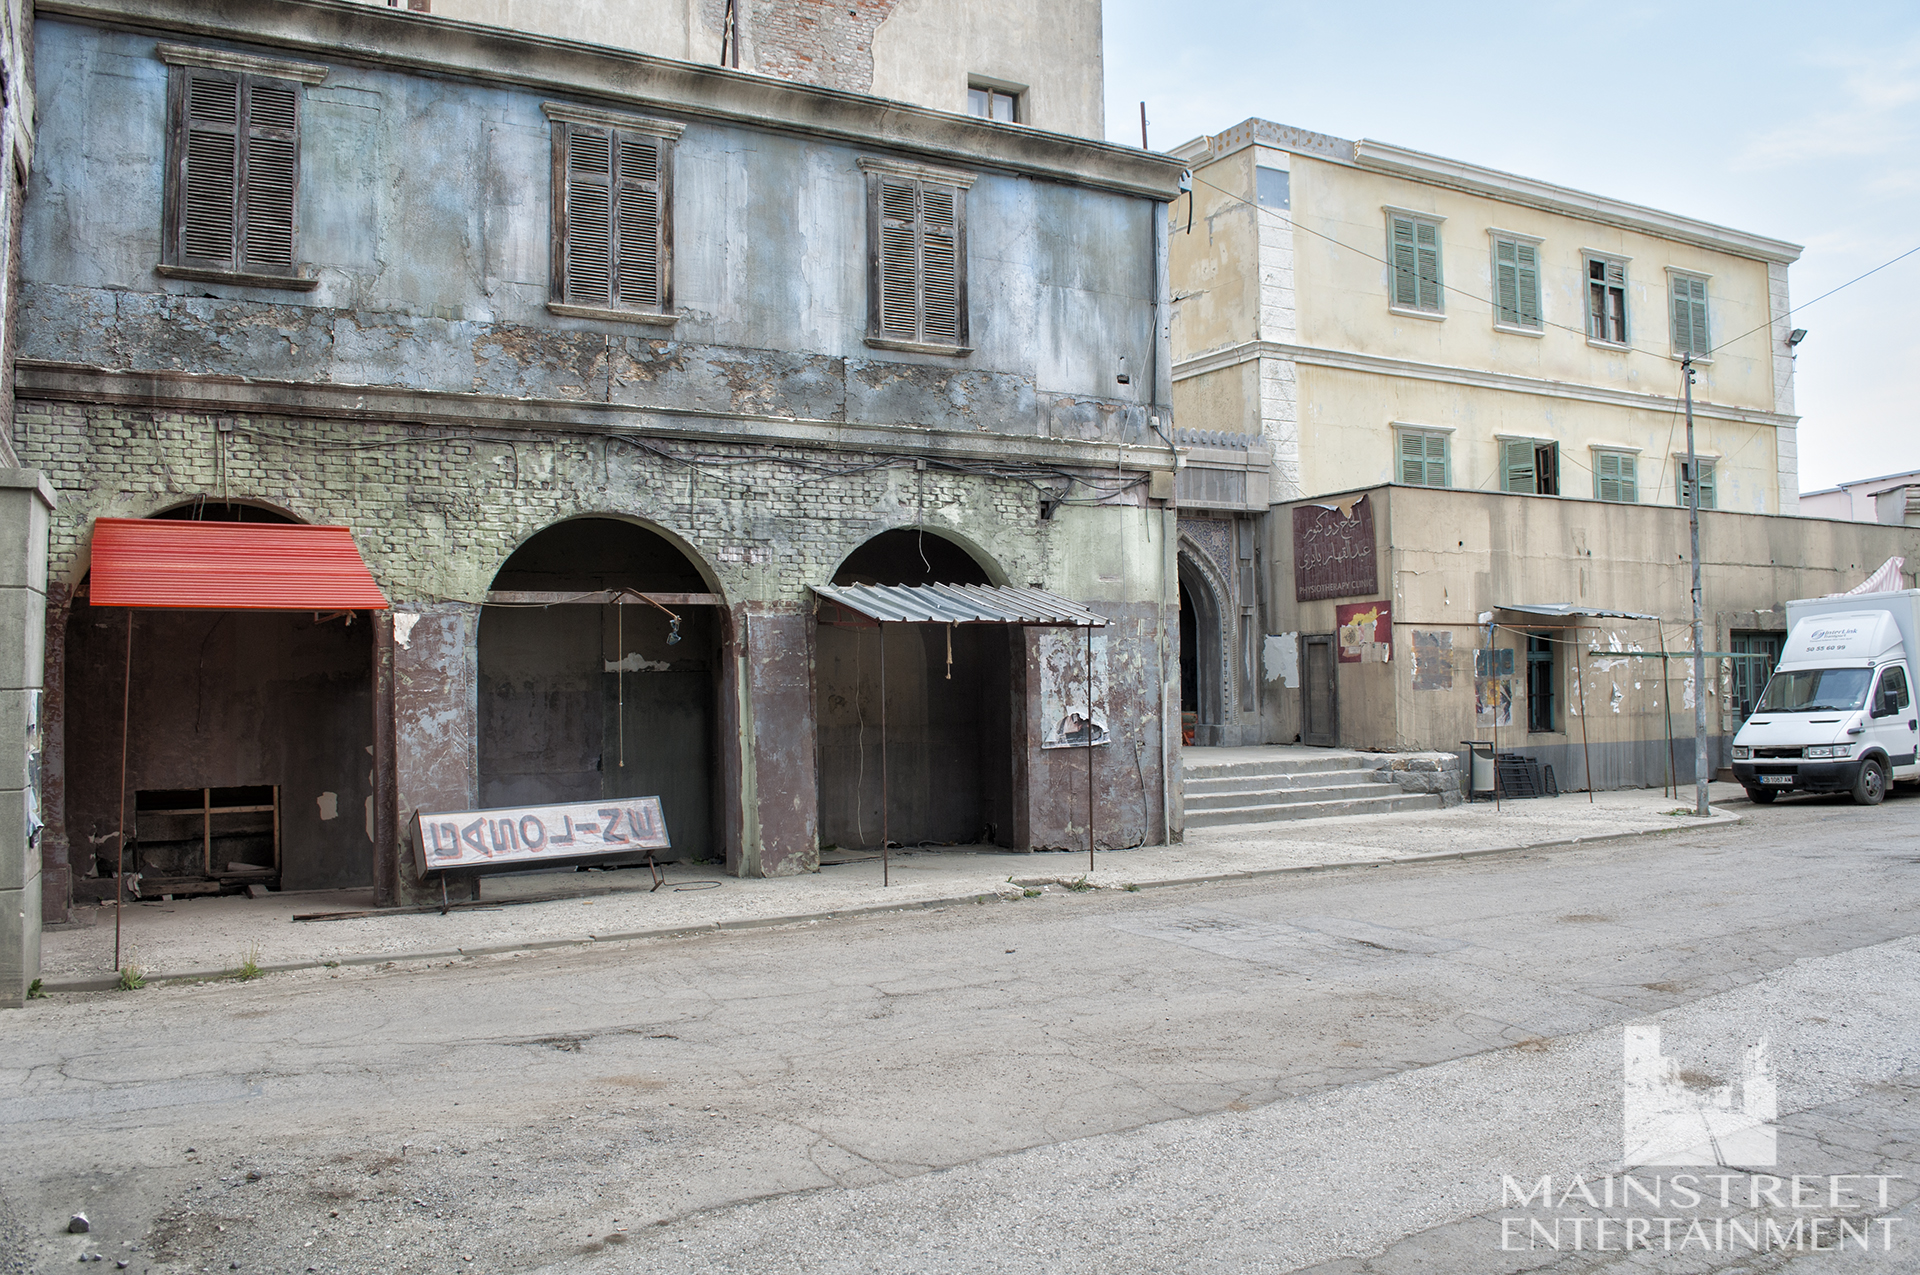 Middle eastern streets set